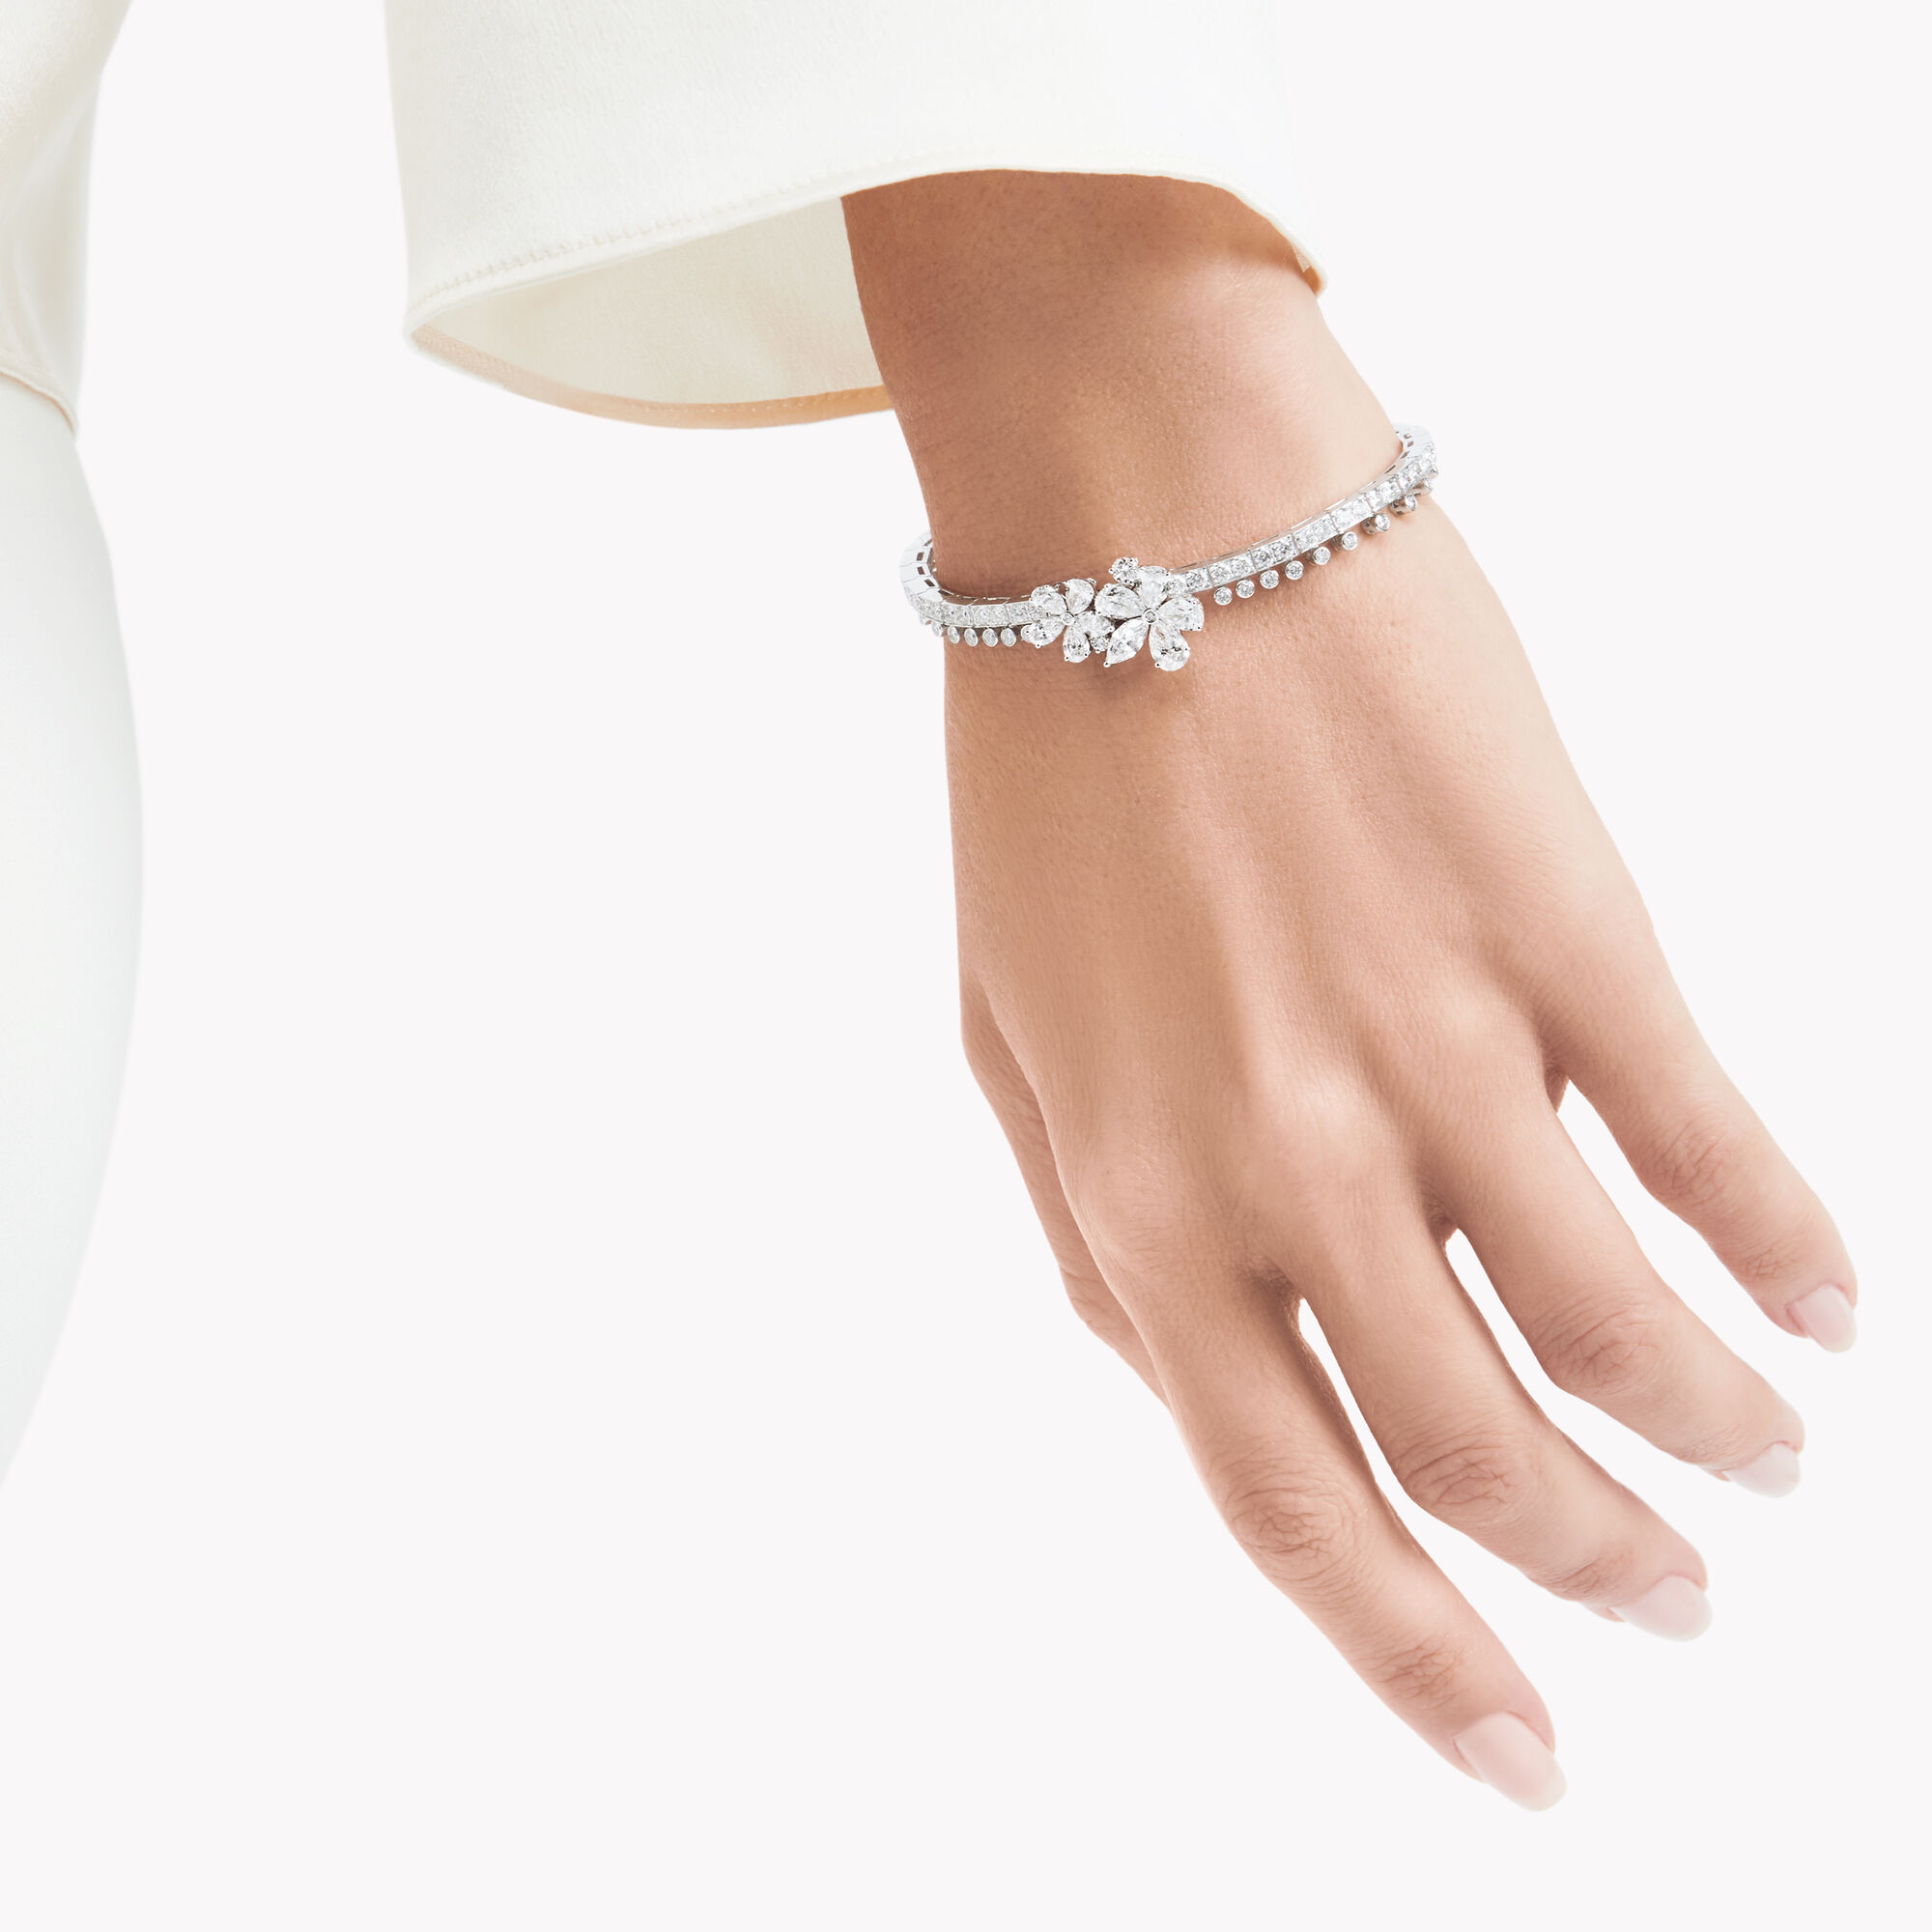 Model wears Carissa Diamond Bracelet from the Graff jewellery collection